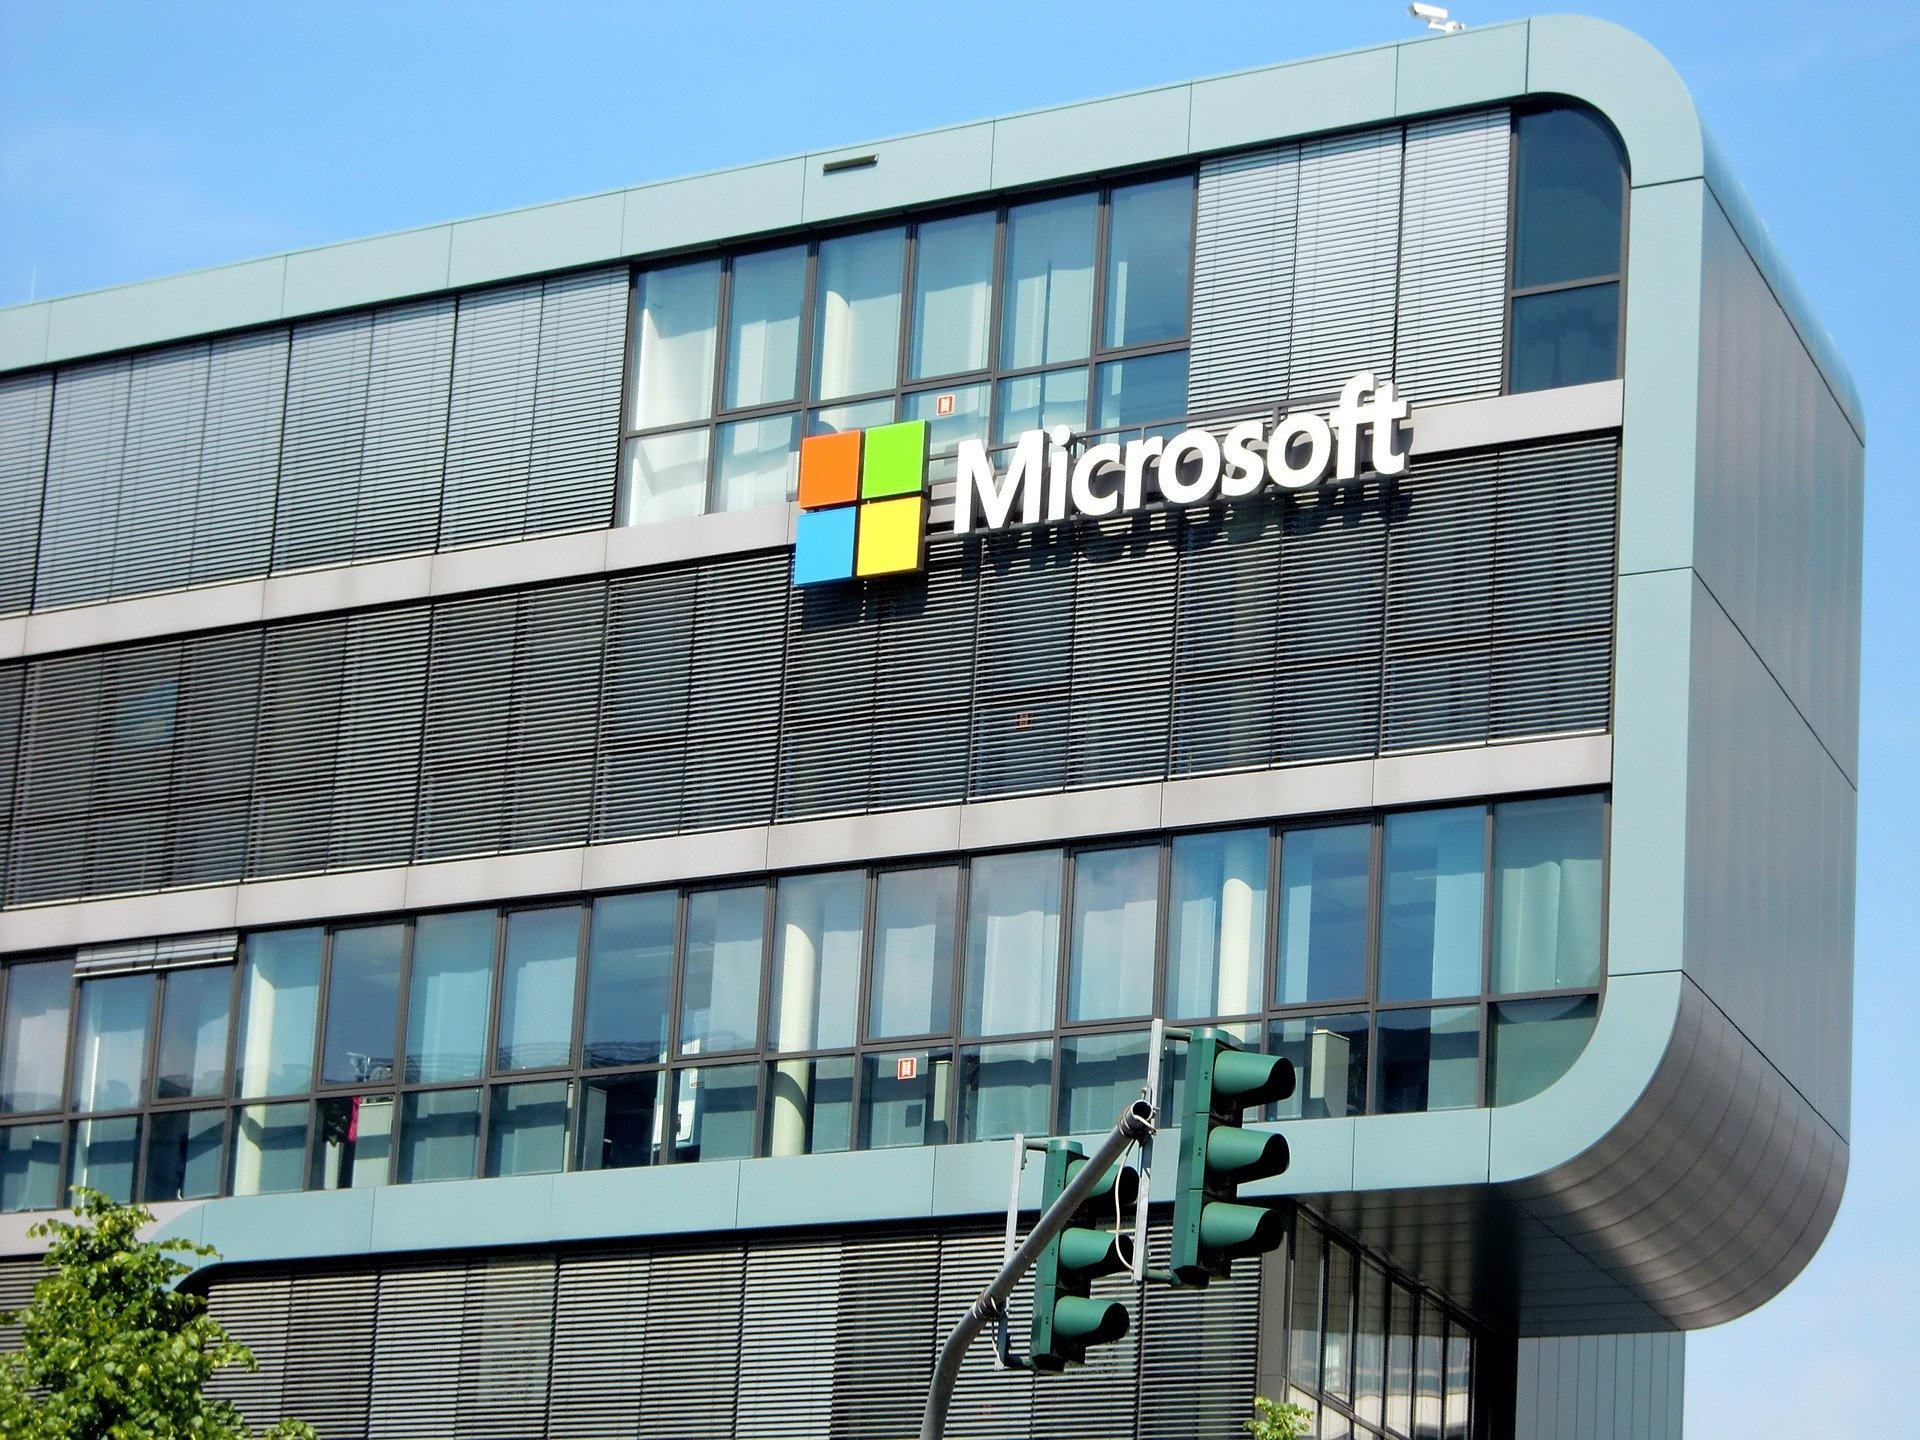 Microsoft won a lawsuit against North Korean hackers, but the payoff is unclear